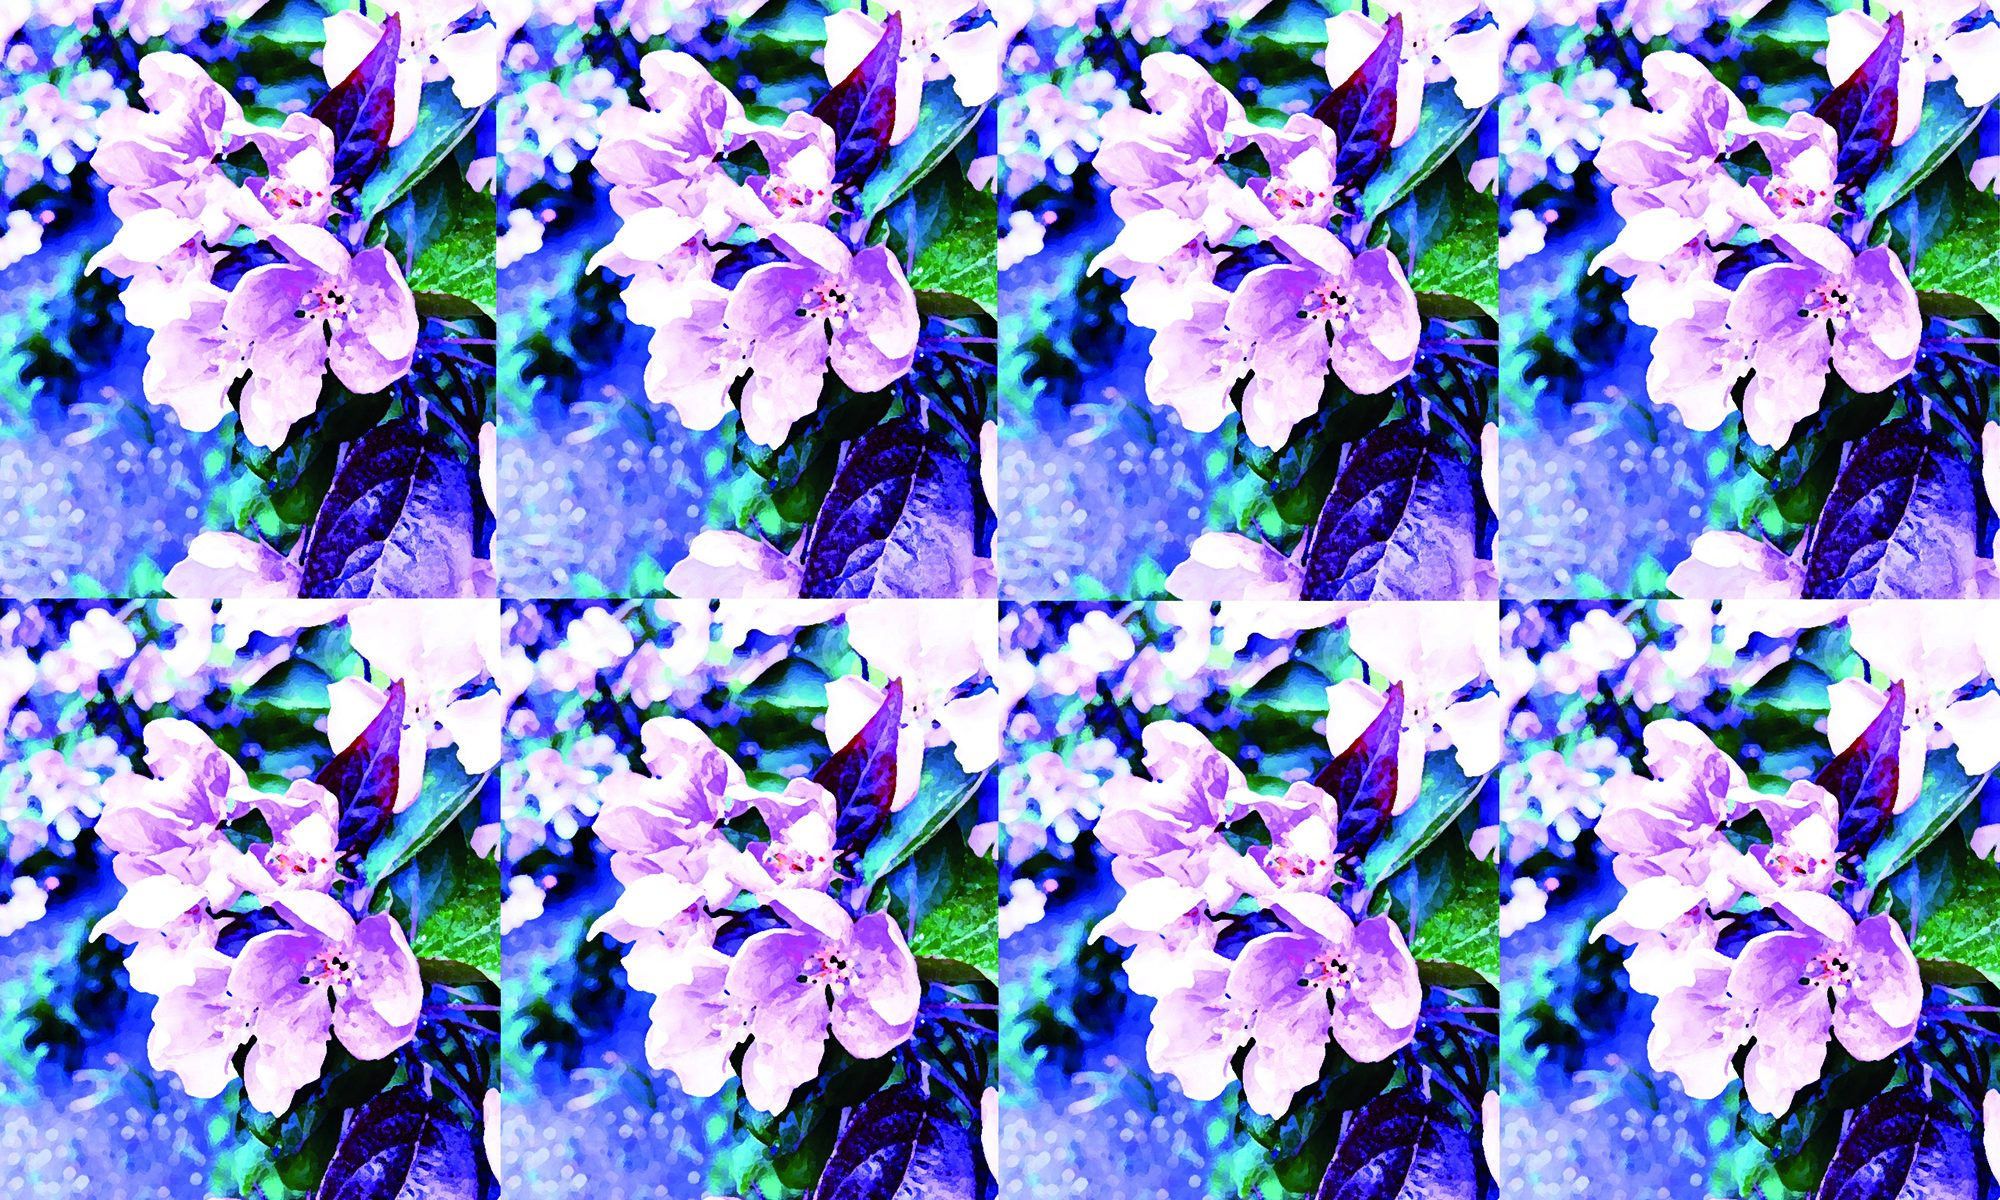 Photo edited floral artwork M